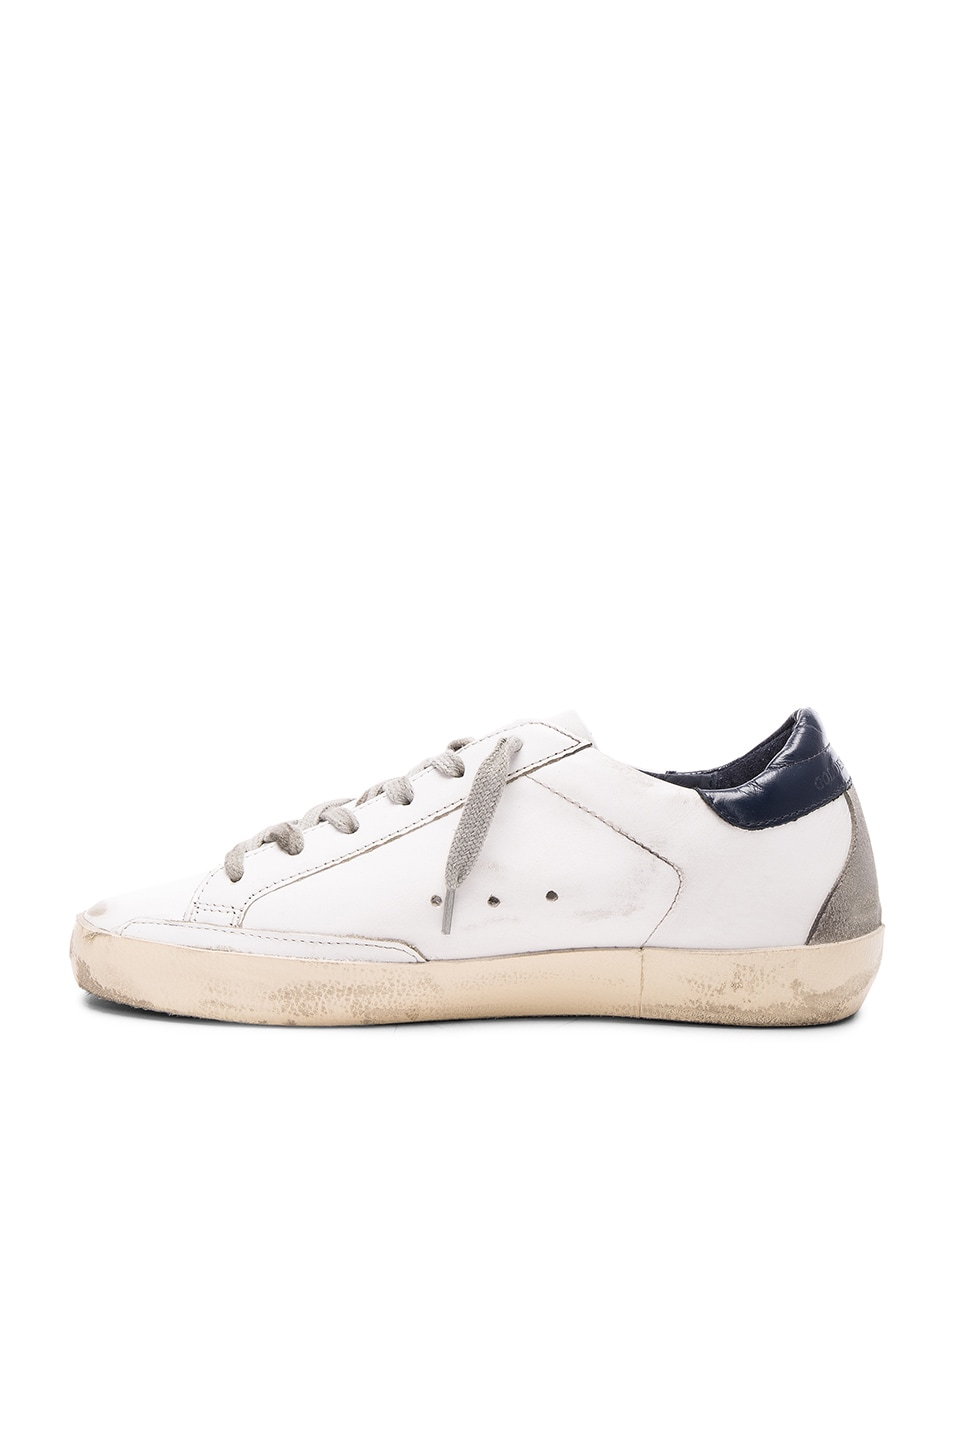 Image 5 of Golden Goose Leather Superstar Low Sneakers in White & Blue